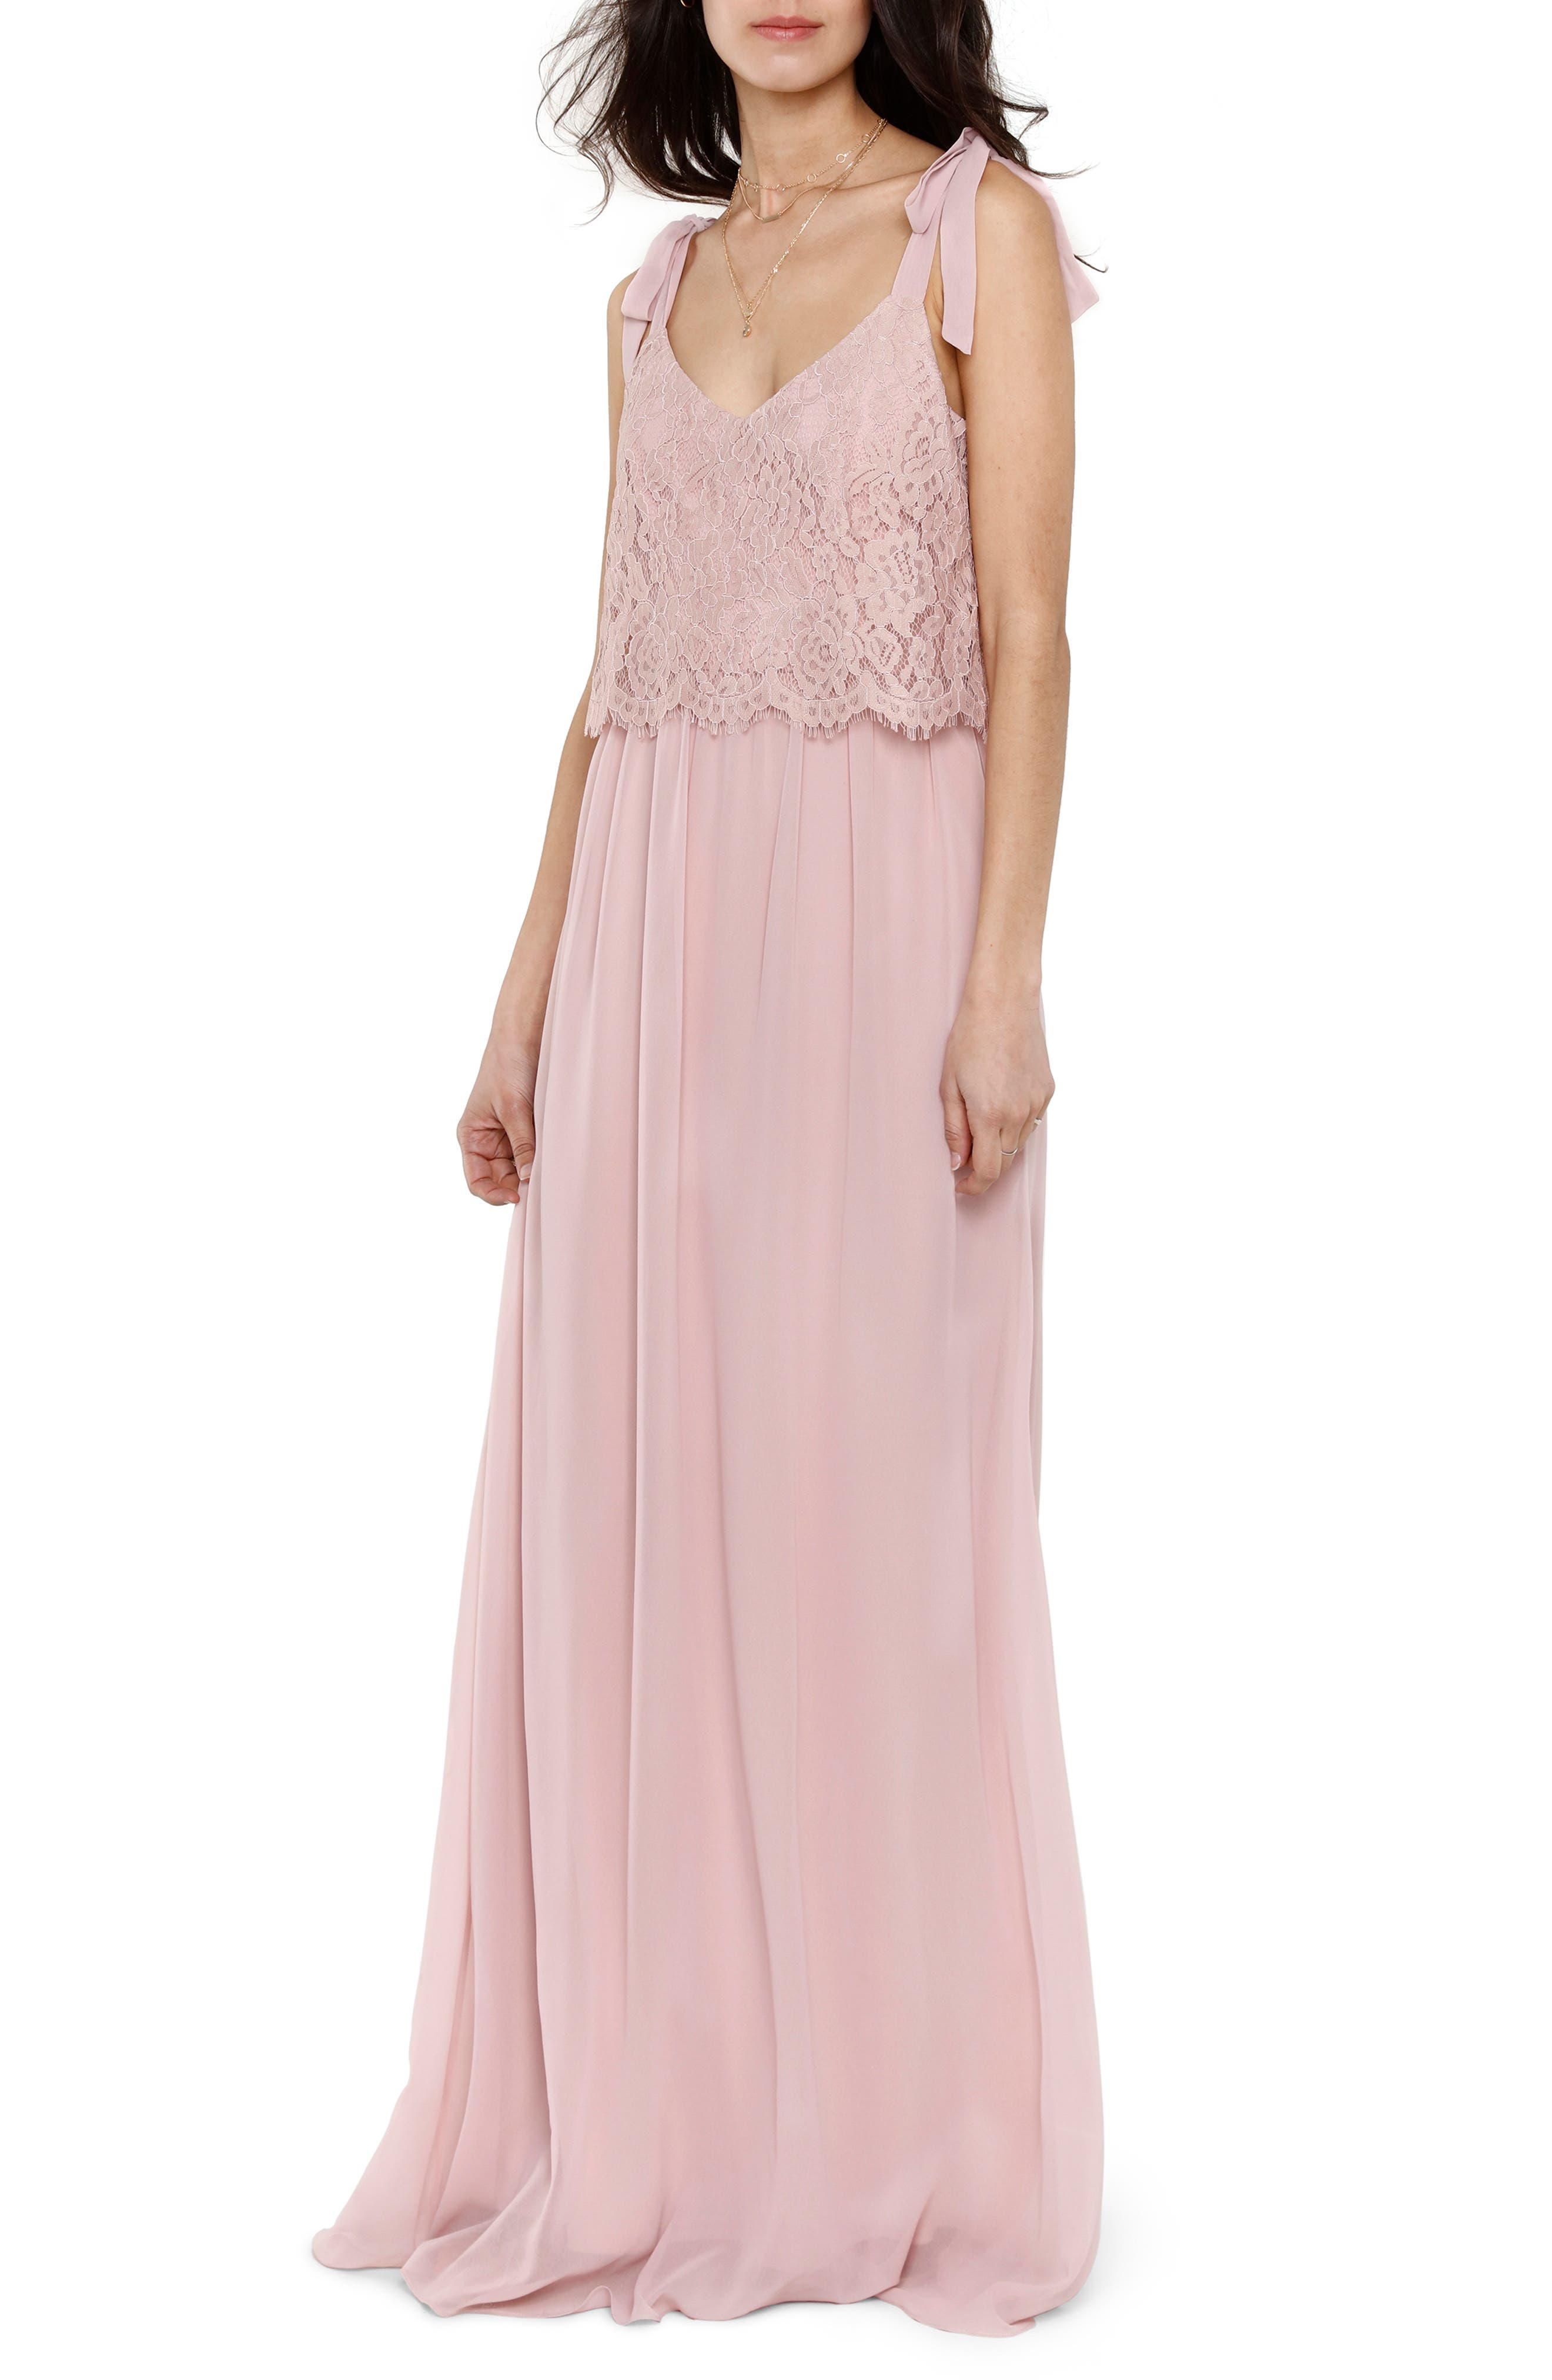 Koko Tie Shoulder Lace Bodice Gown,                             Main thumbnail 1, color,                             MAUVE